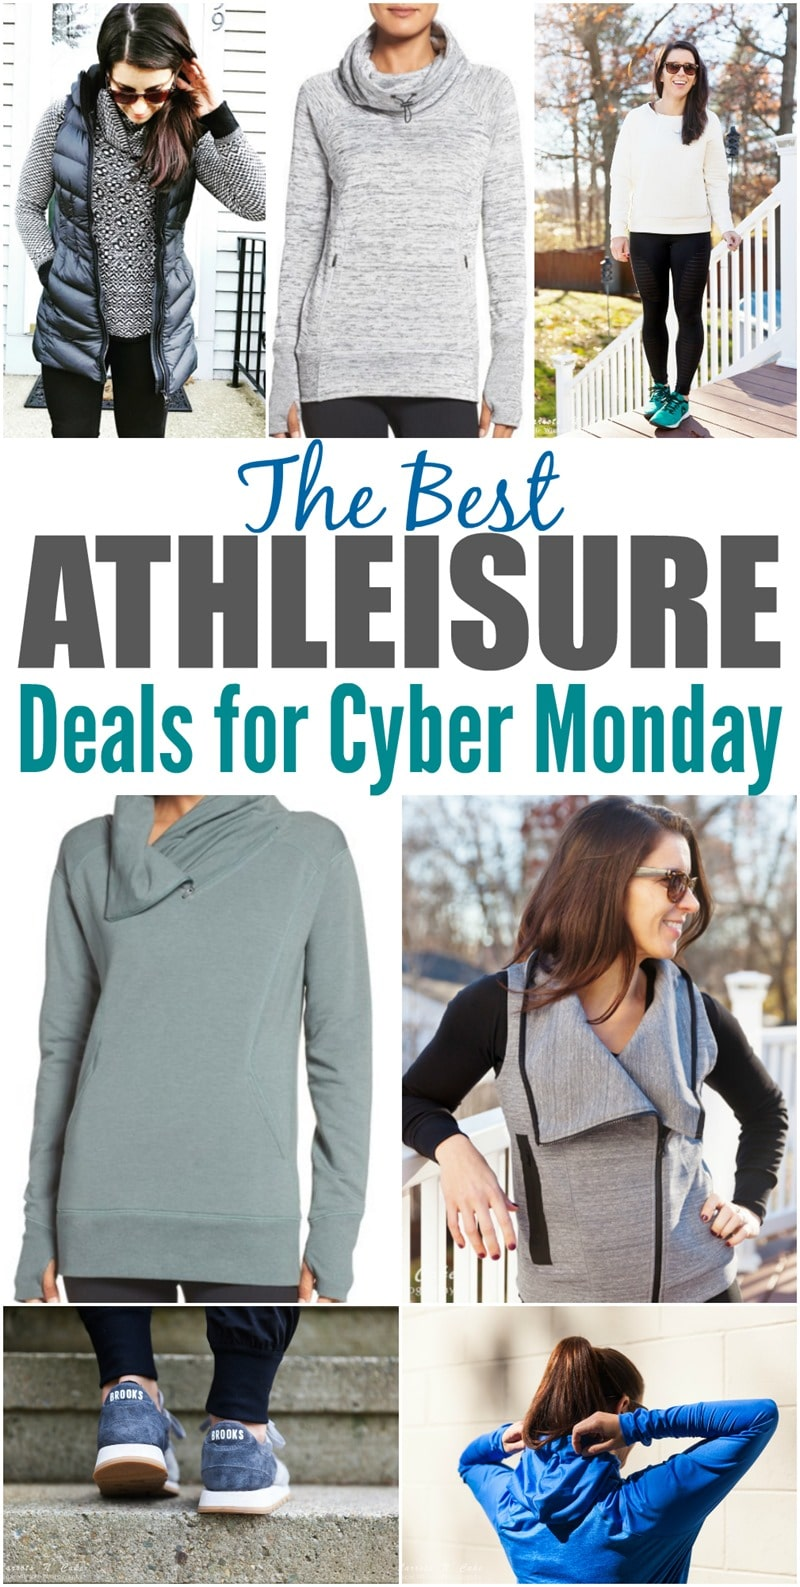 The Best Athleisure Finds for Cyber Monday